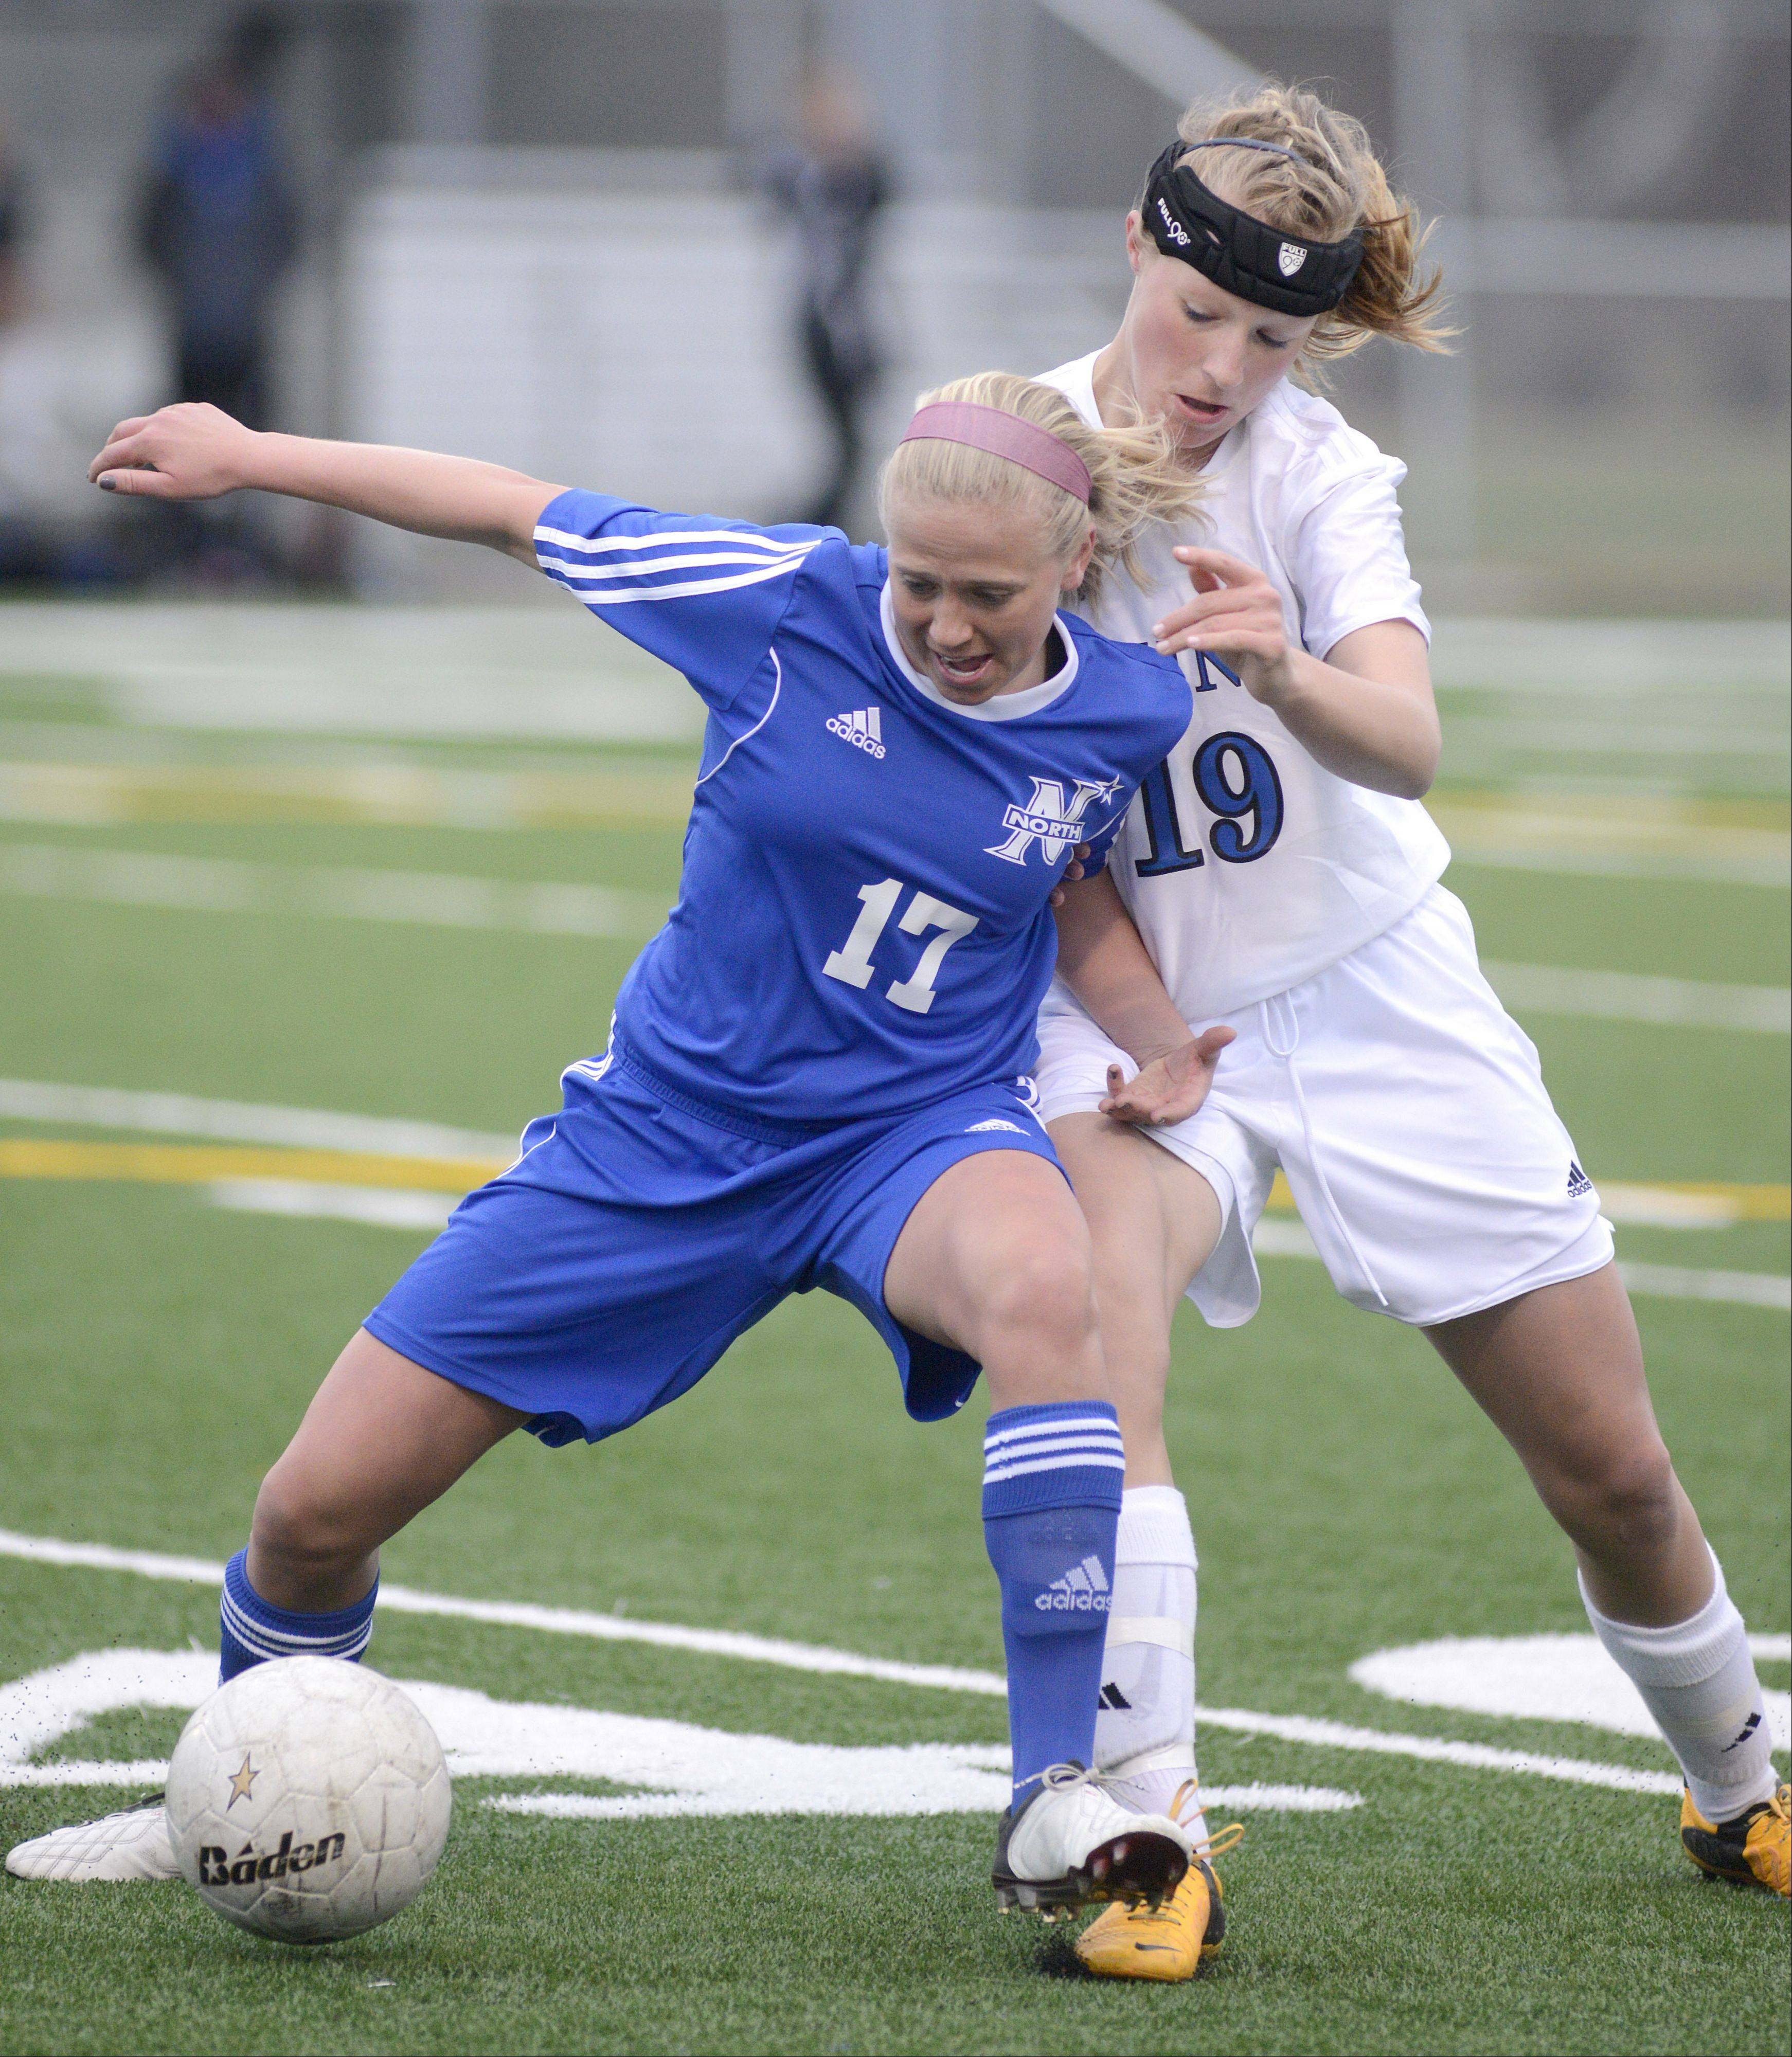 St. Charles North's Kelly Manski and Geneva's Megan Kozlow battle for the ball in the first half on Tuesday, April 9.